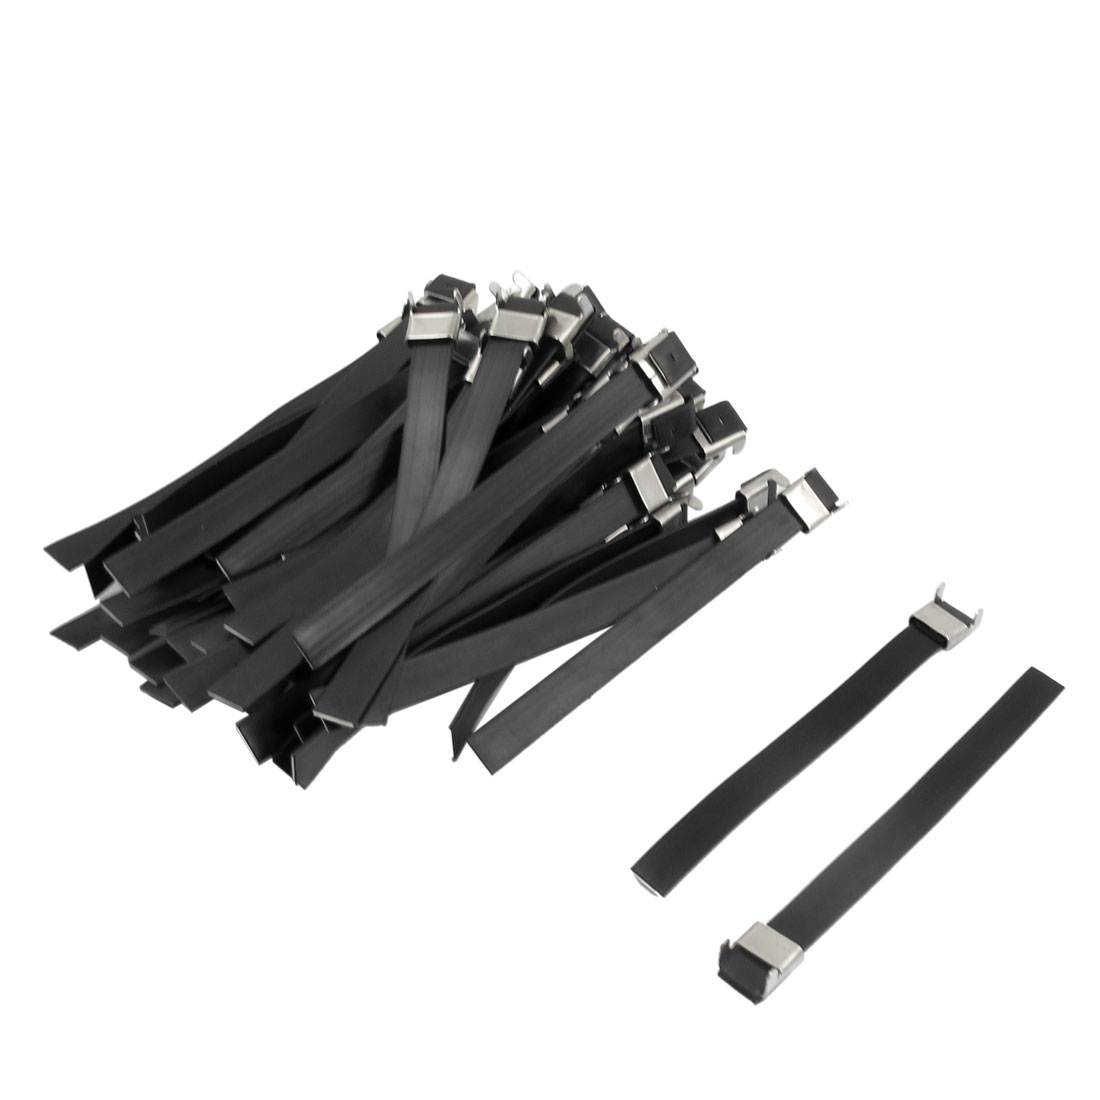 Black Stainless PVC Sprayed Self Locking 12x150mm Cable Ties Wire Strap 50 Pcs